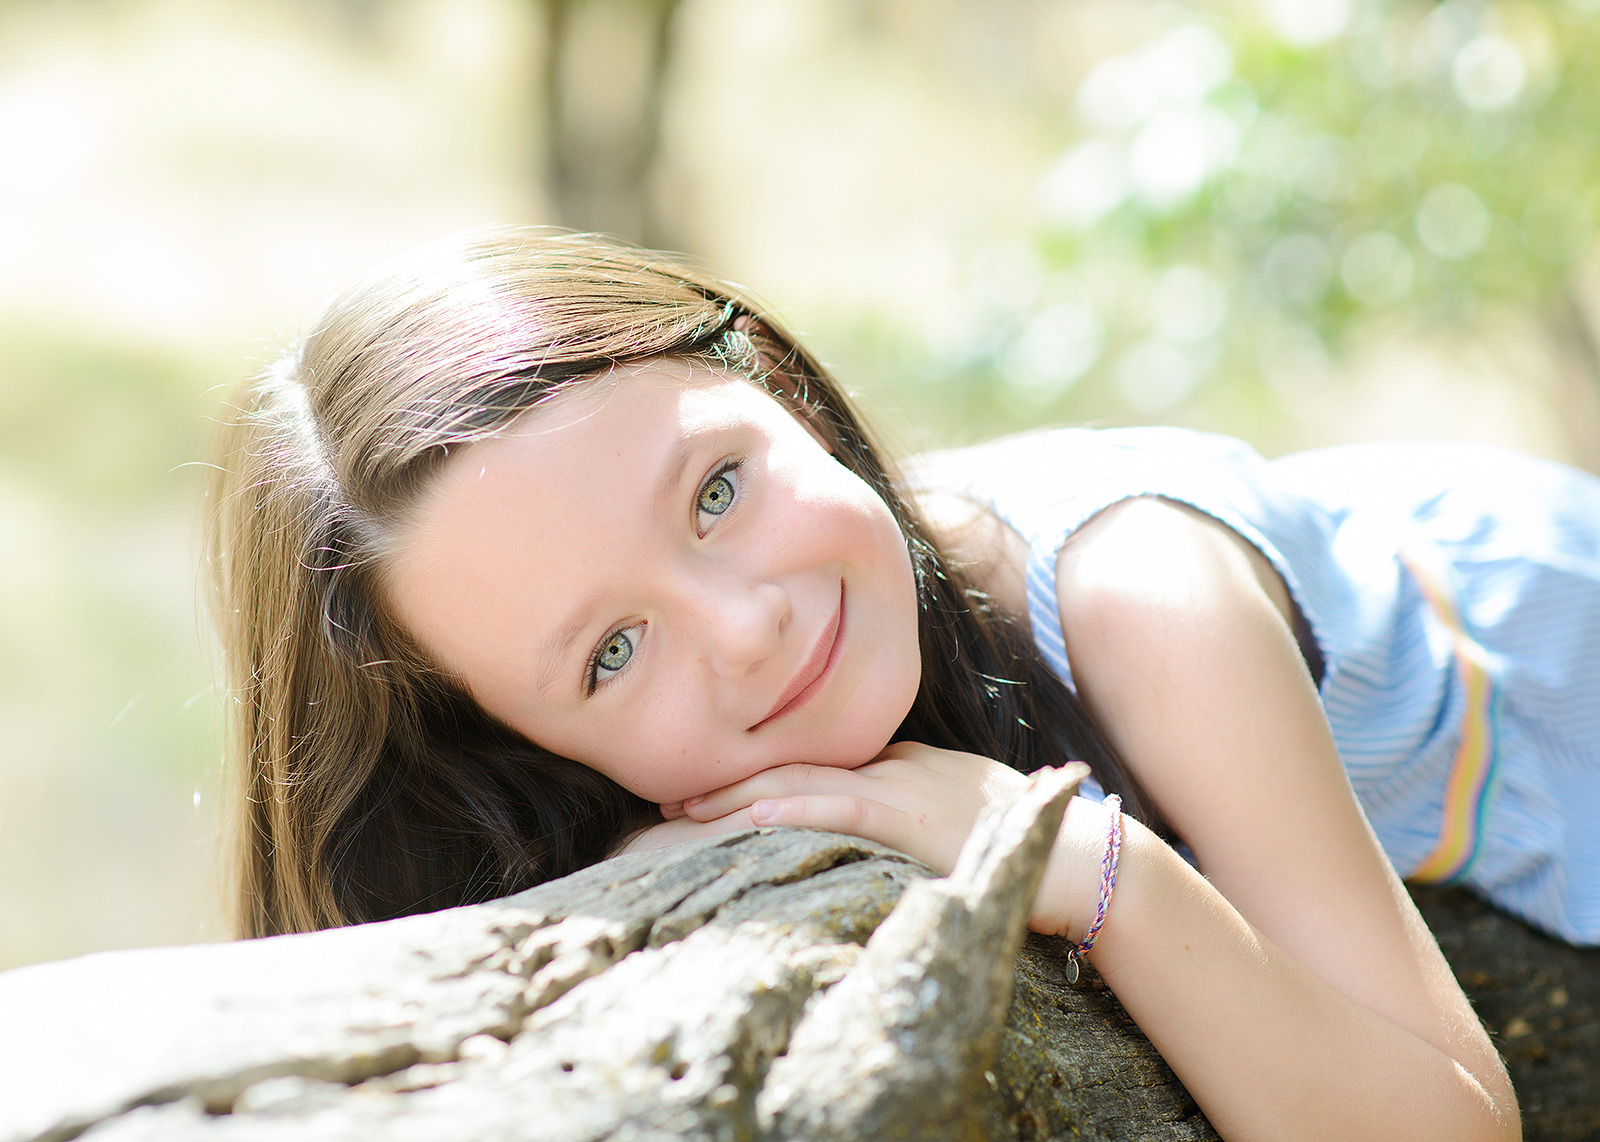 Daughter Smiling with Green Eyes on Fallen Log at Effie Yeaw Nature Center